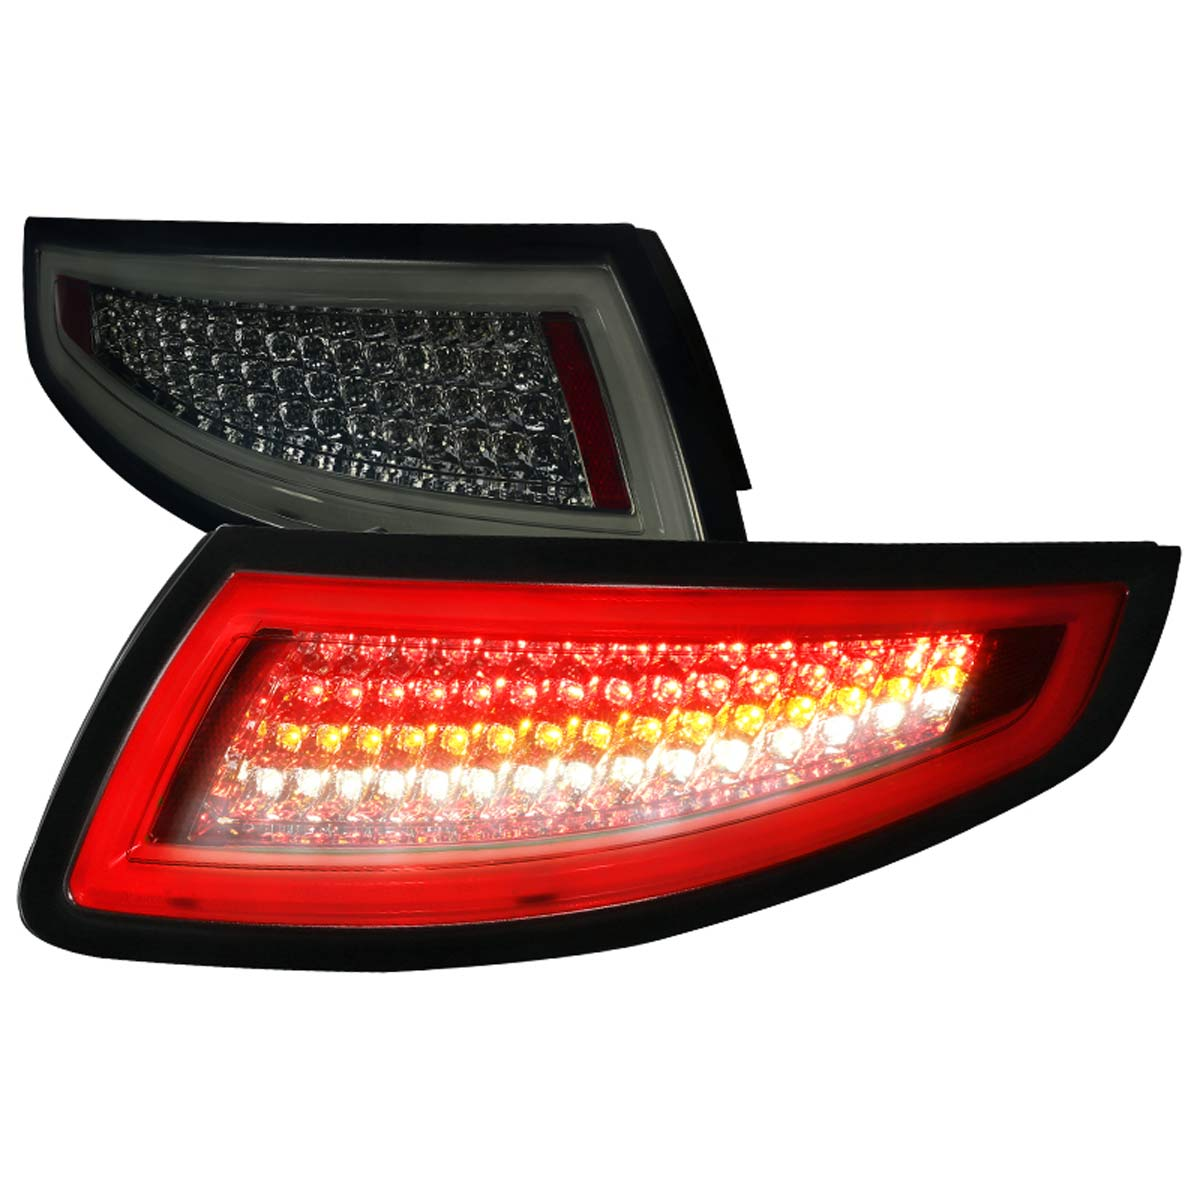 2005 08 Porsche Carrera 997 911 Led Tail Lights Smoked